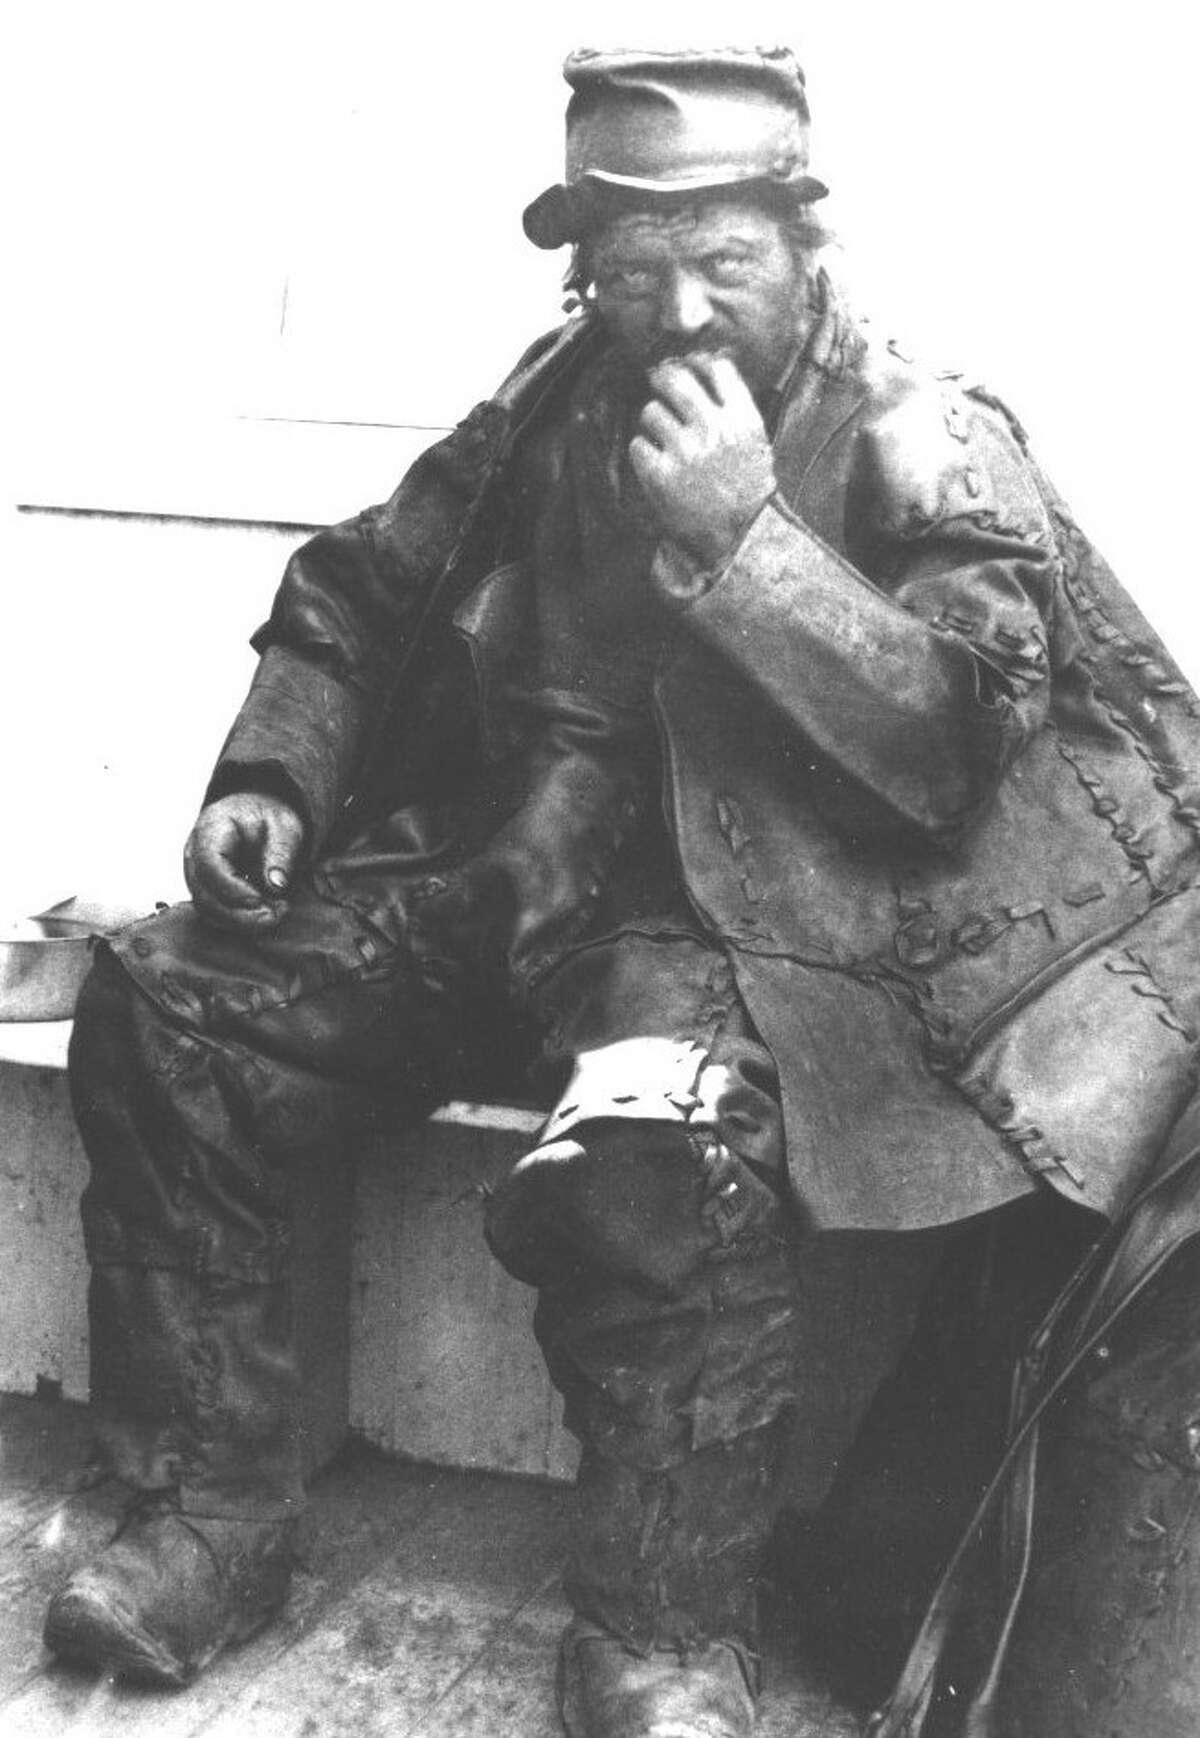 Undated photo of the Leather Man, an unidentified vagabond who trekked through Connecticut and New York state in the late 1800s.